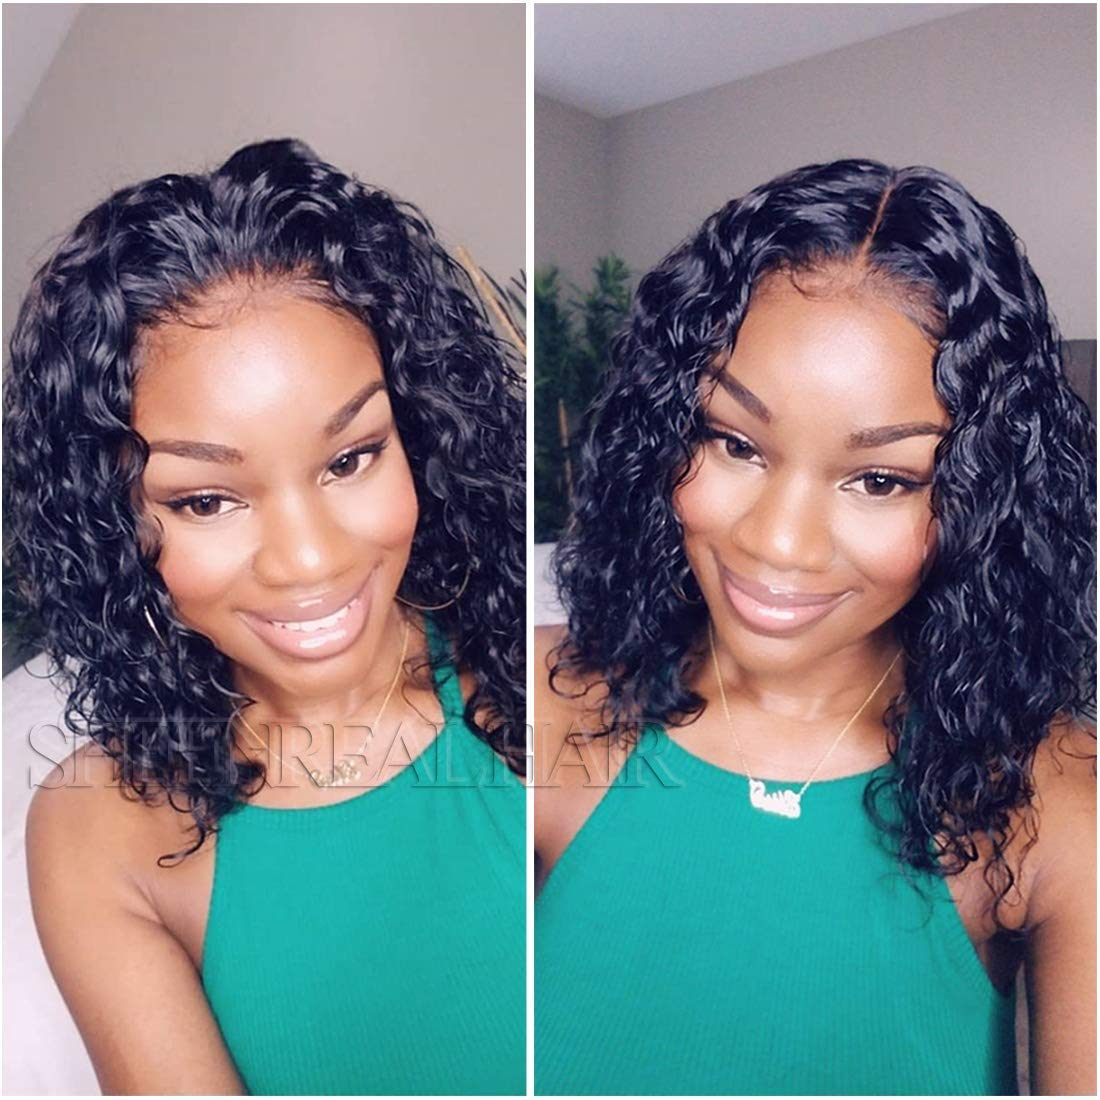 Amazon Com Curly Human Hair Lace Front Wigs Bob Style Brazilian Virgin Human Hair Wigs Pre Plucked With Baby Hair Glueless Lace Wig For Women 14 Inch Beauty